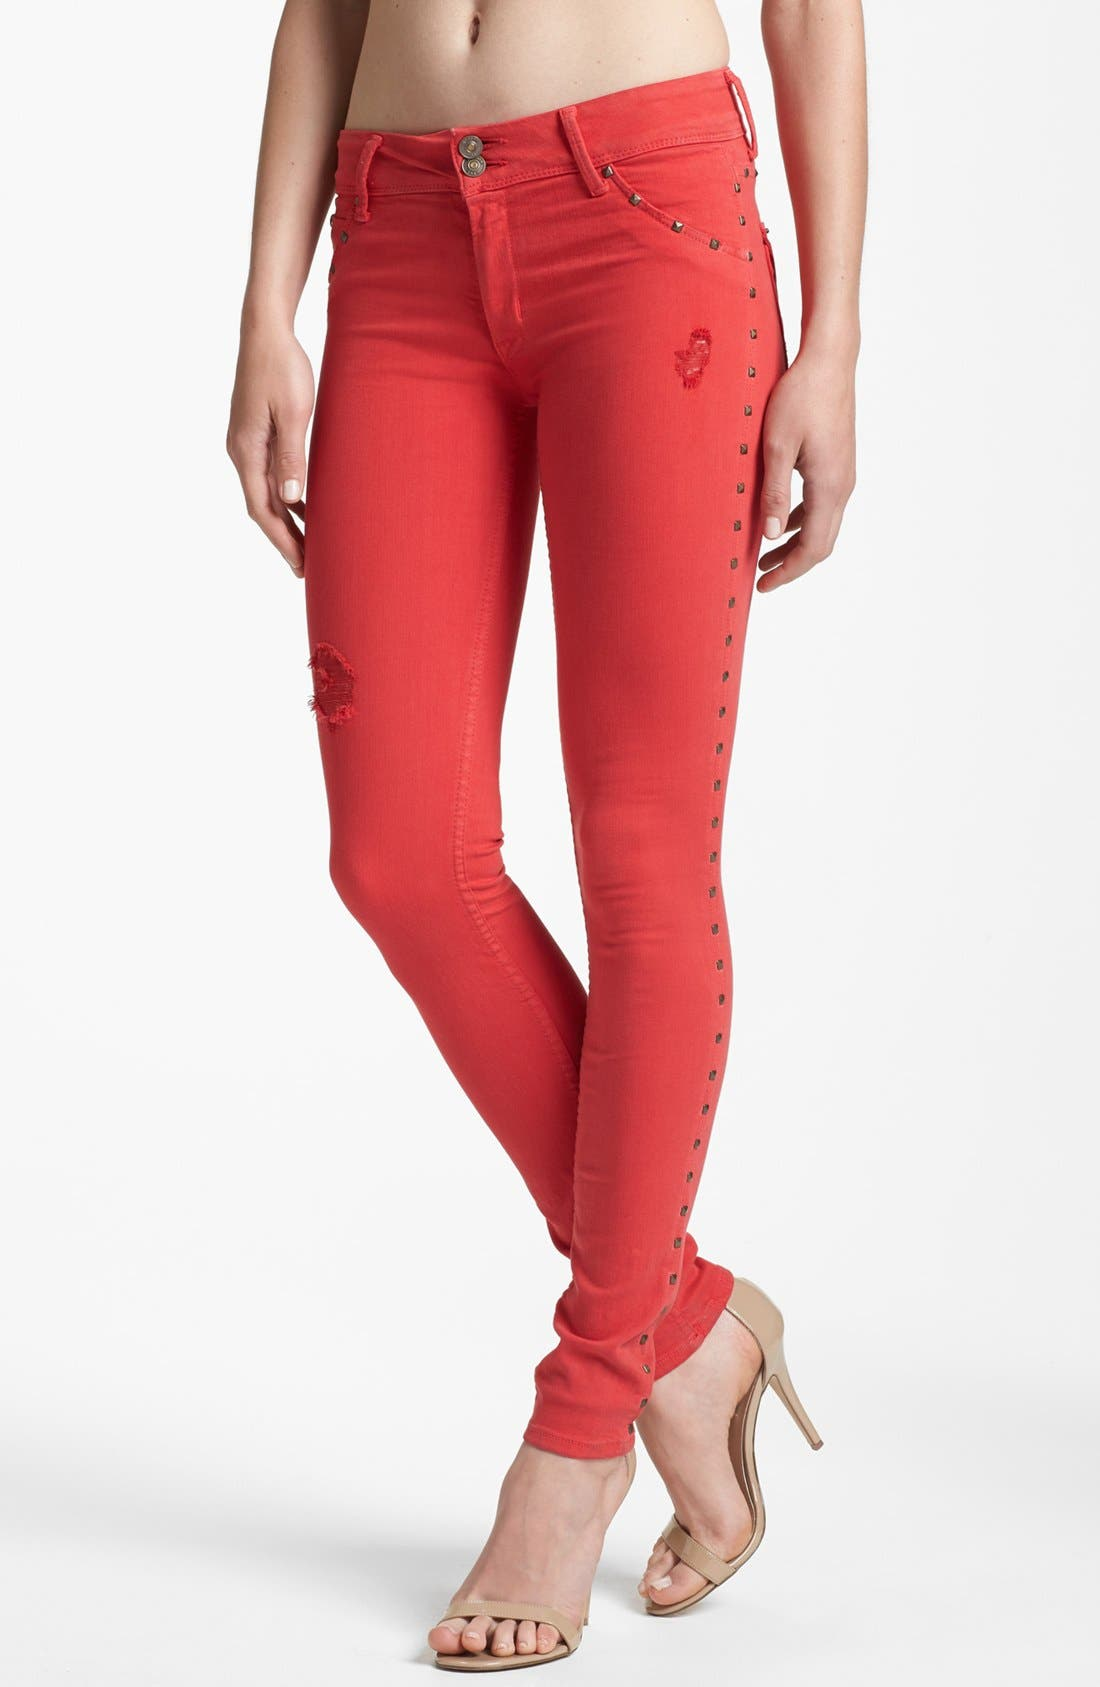 Main Image - Hudson Jeans 'Collin' Skinny Stretch Jeans (Red Dahlia)